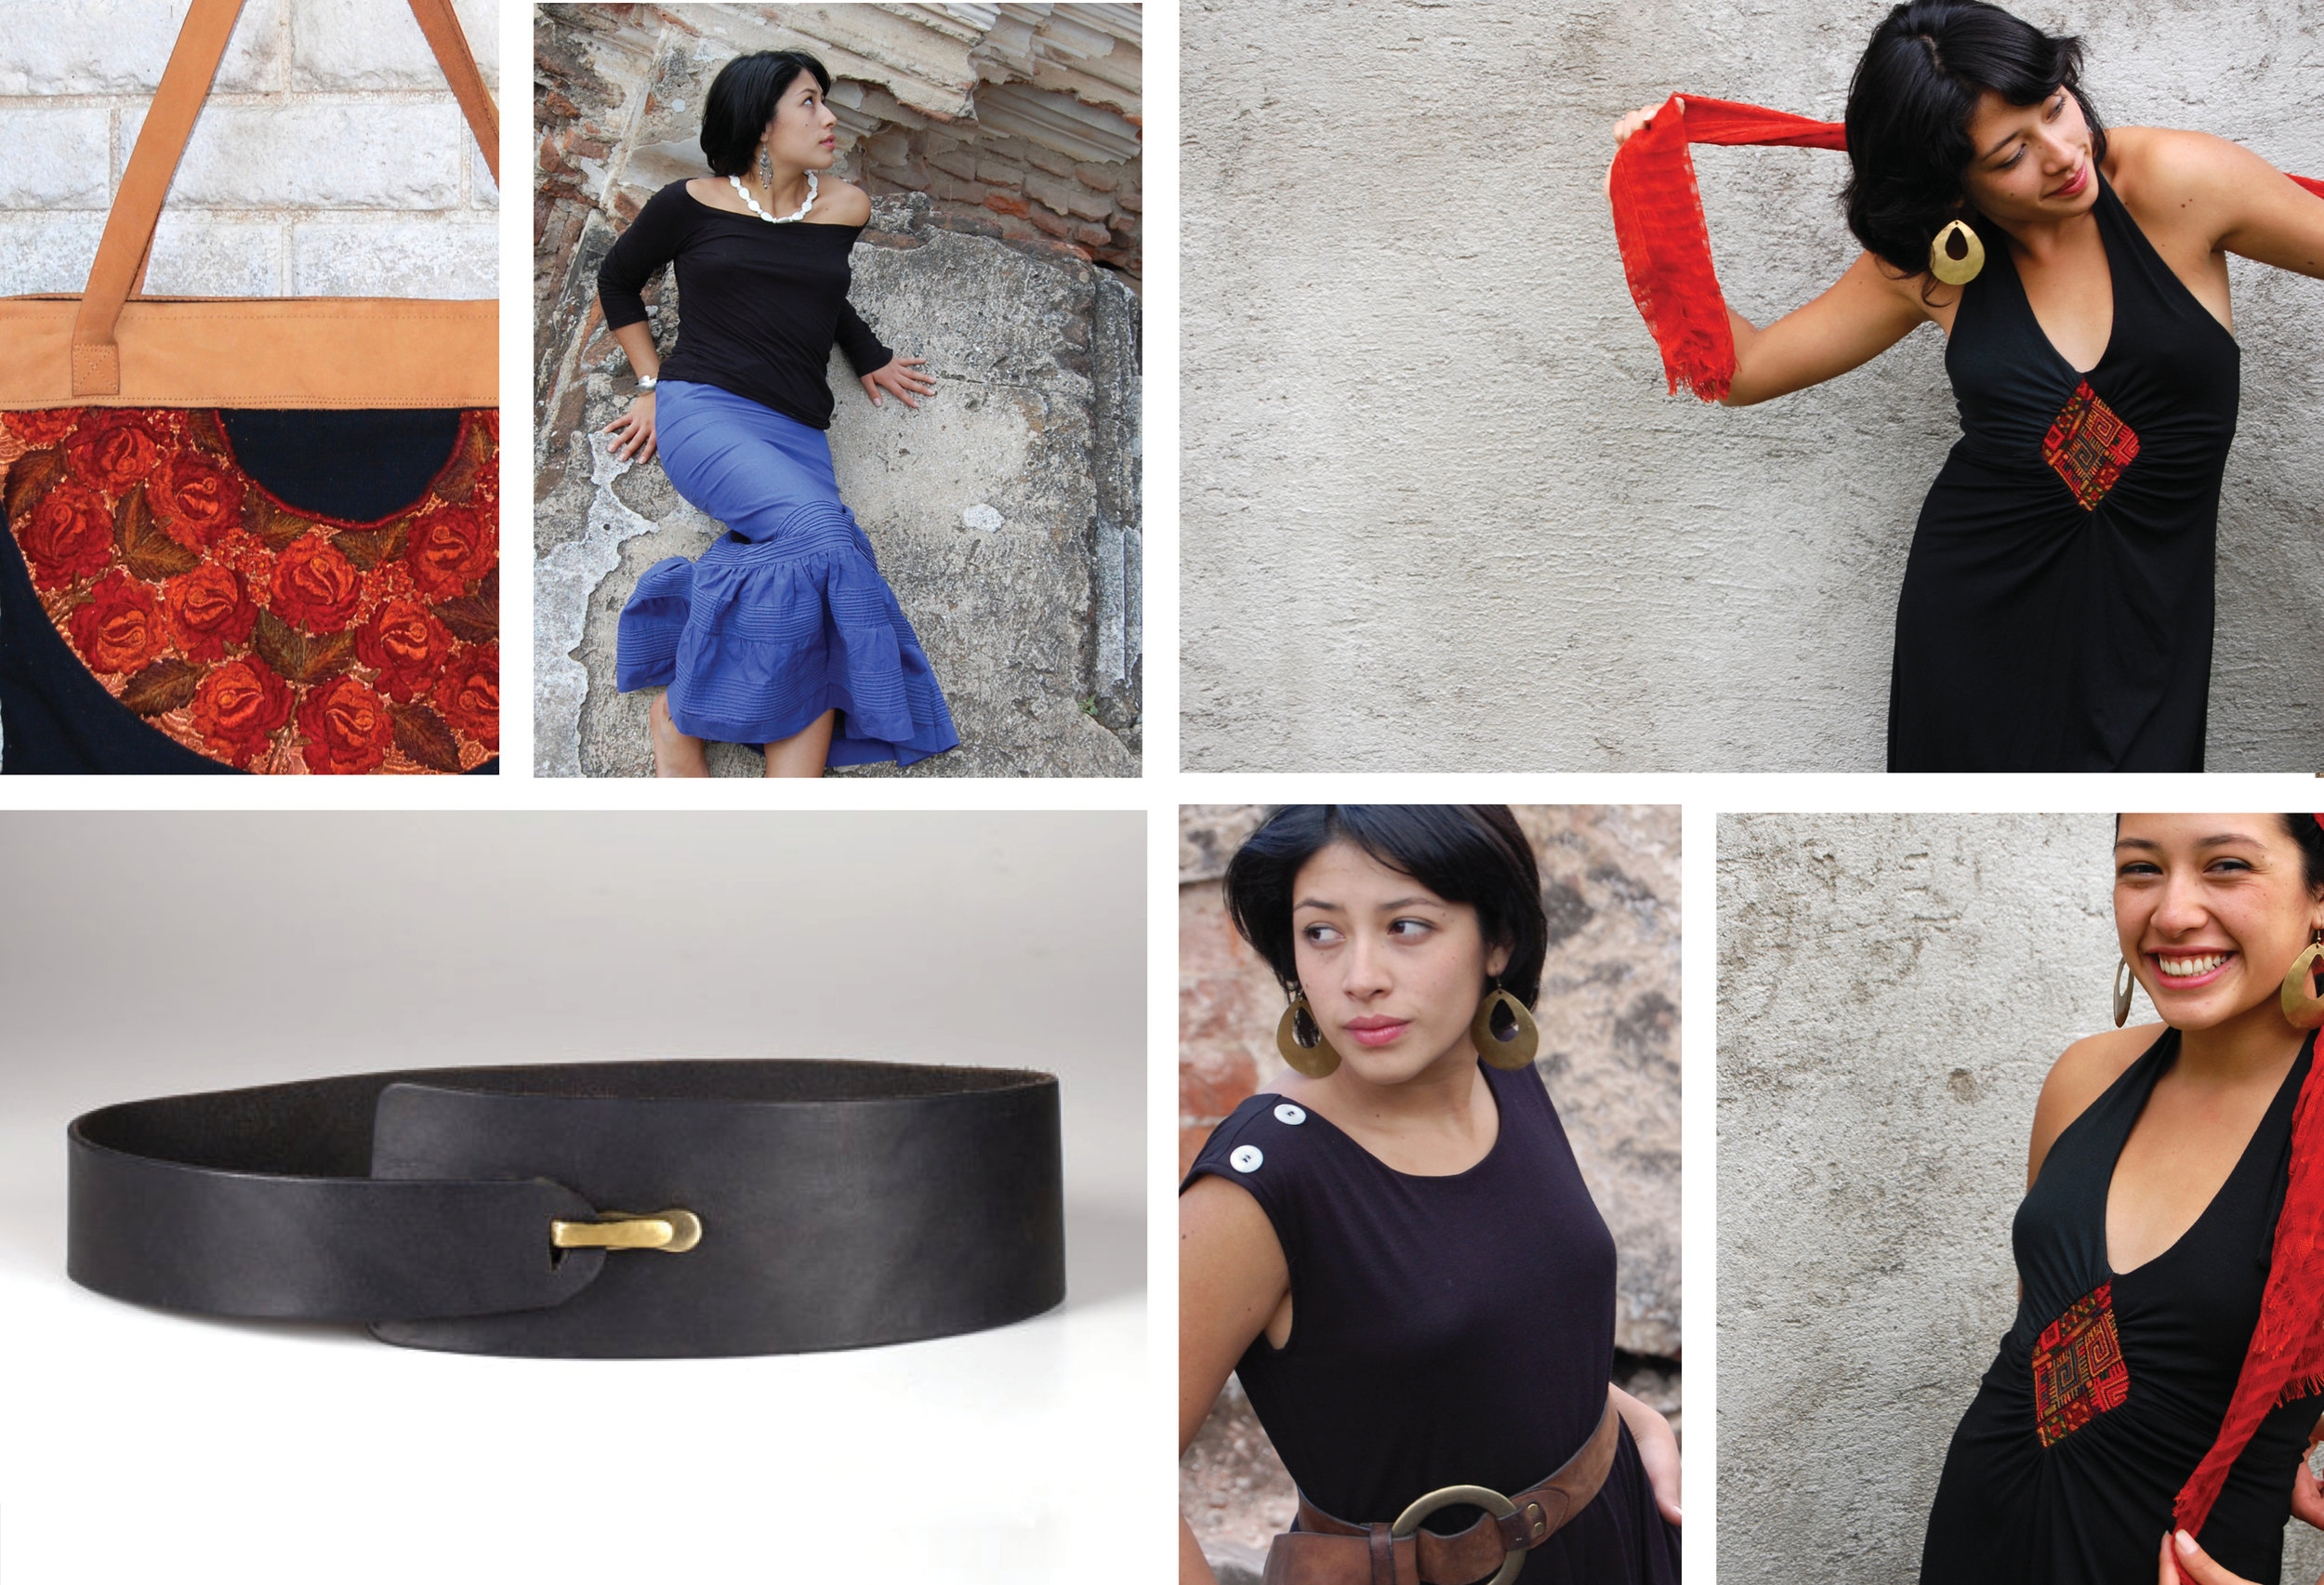 These photoshoots captured the carefully designed, socially conscious products designed by Ambos Designs. This socially conscious company produced clothing, accessories and in Guatemala.